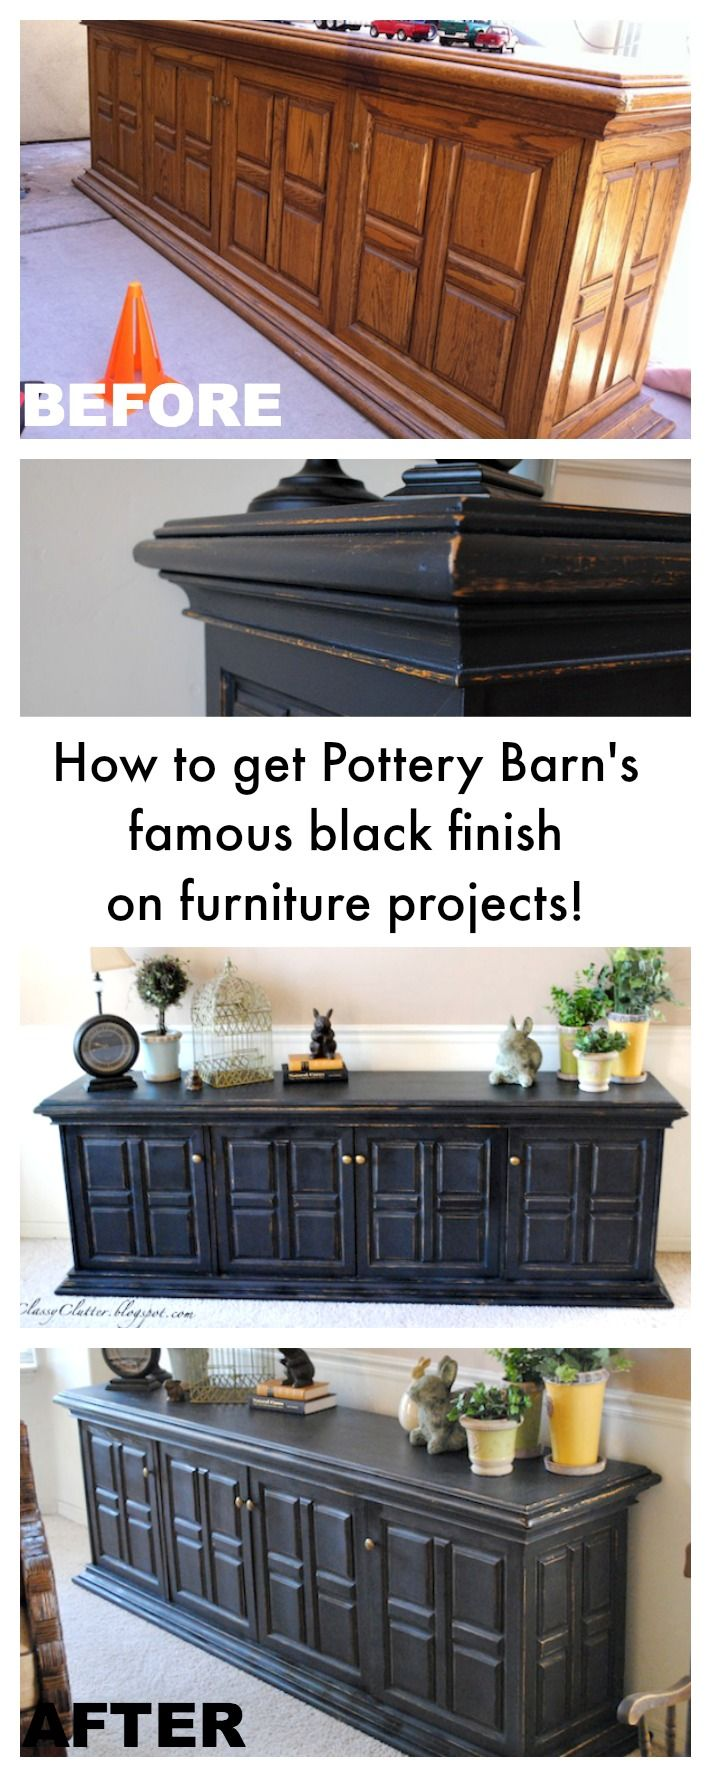 Pottery Barn Black Furniture Finish Tutorial - Lovely black furniture for the home.